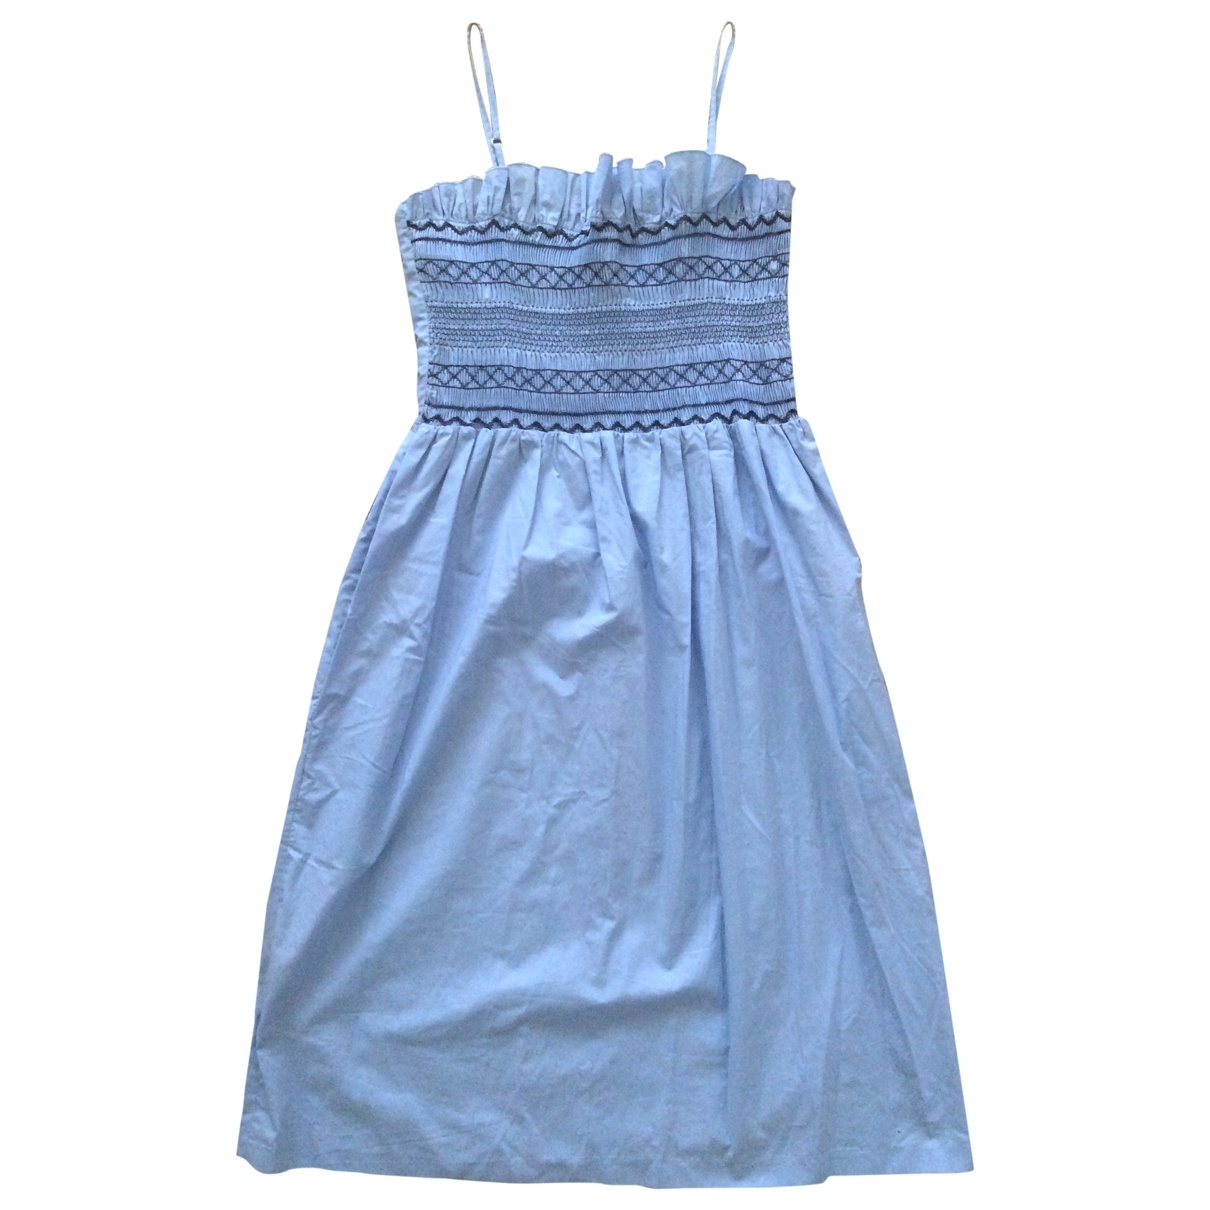 Claudie Pierlot \N Kleid in  Blau Baumwolle